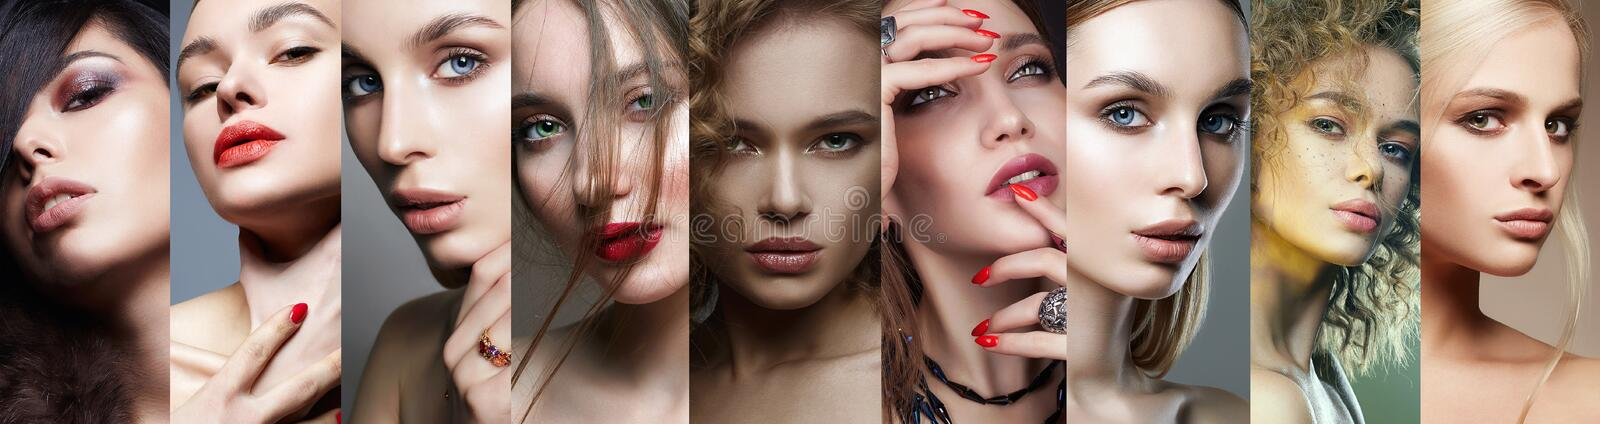 Different female faces. collage of beautiful women stock image